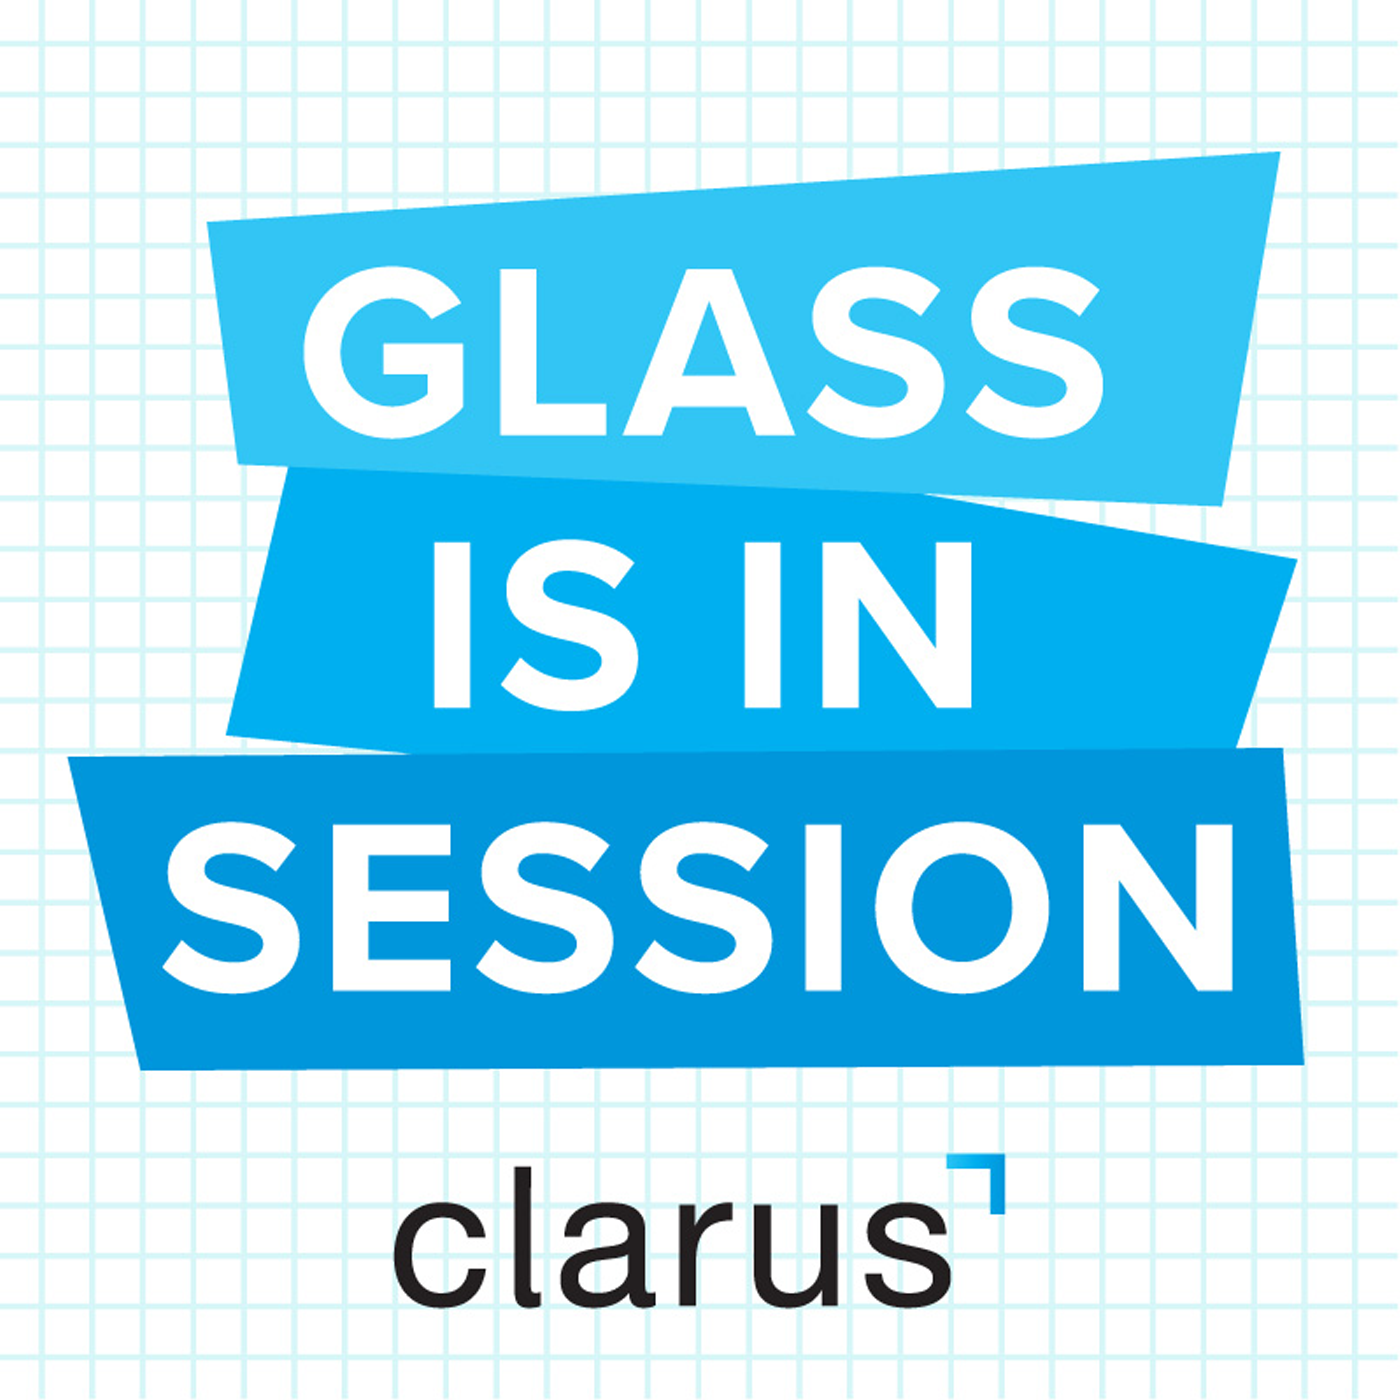 Glass is in Session by Clarus